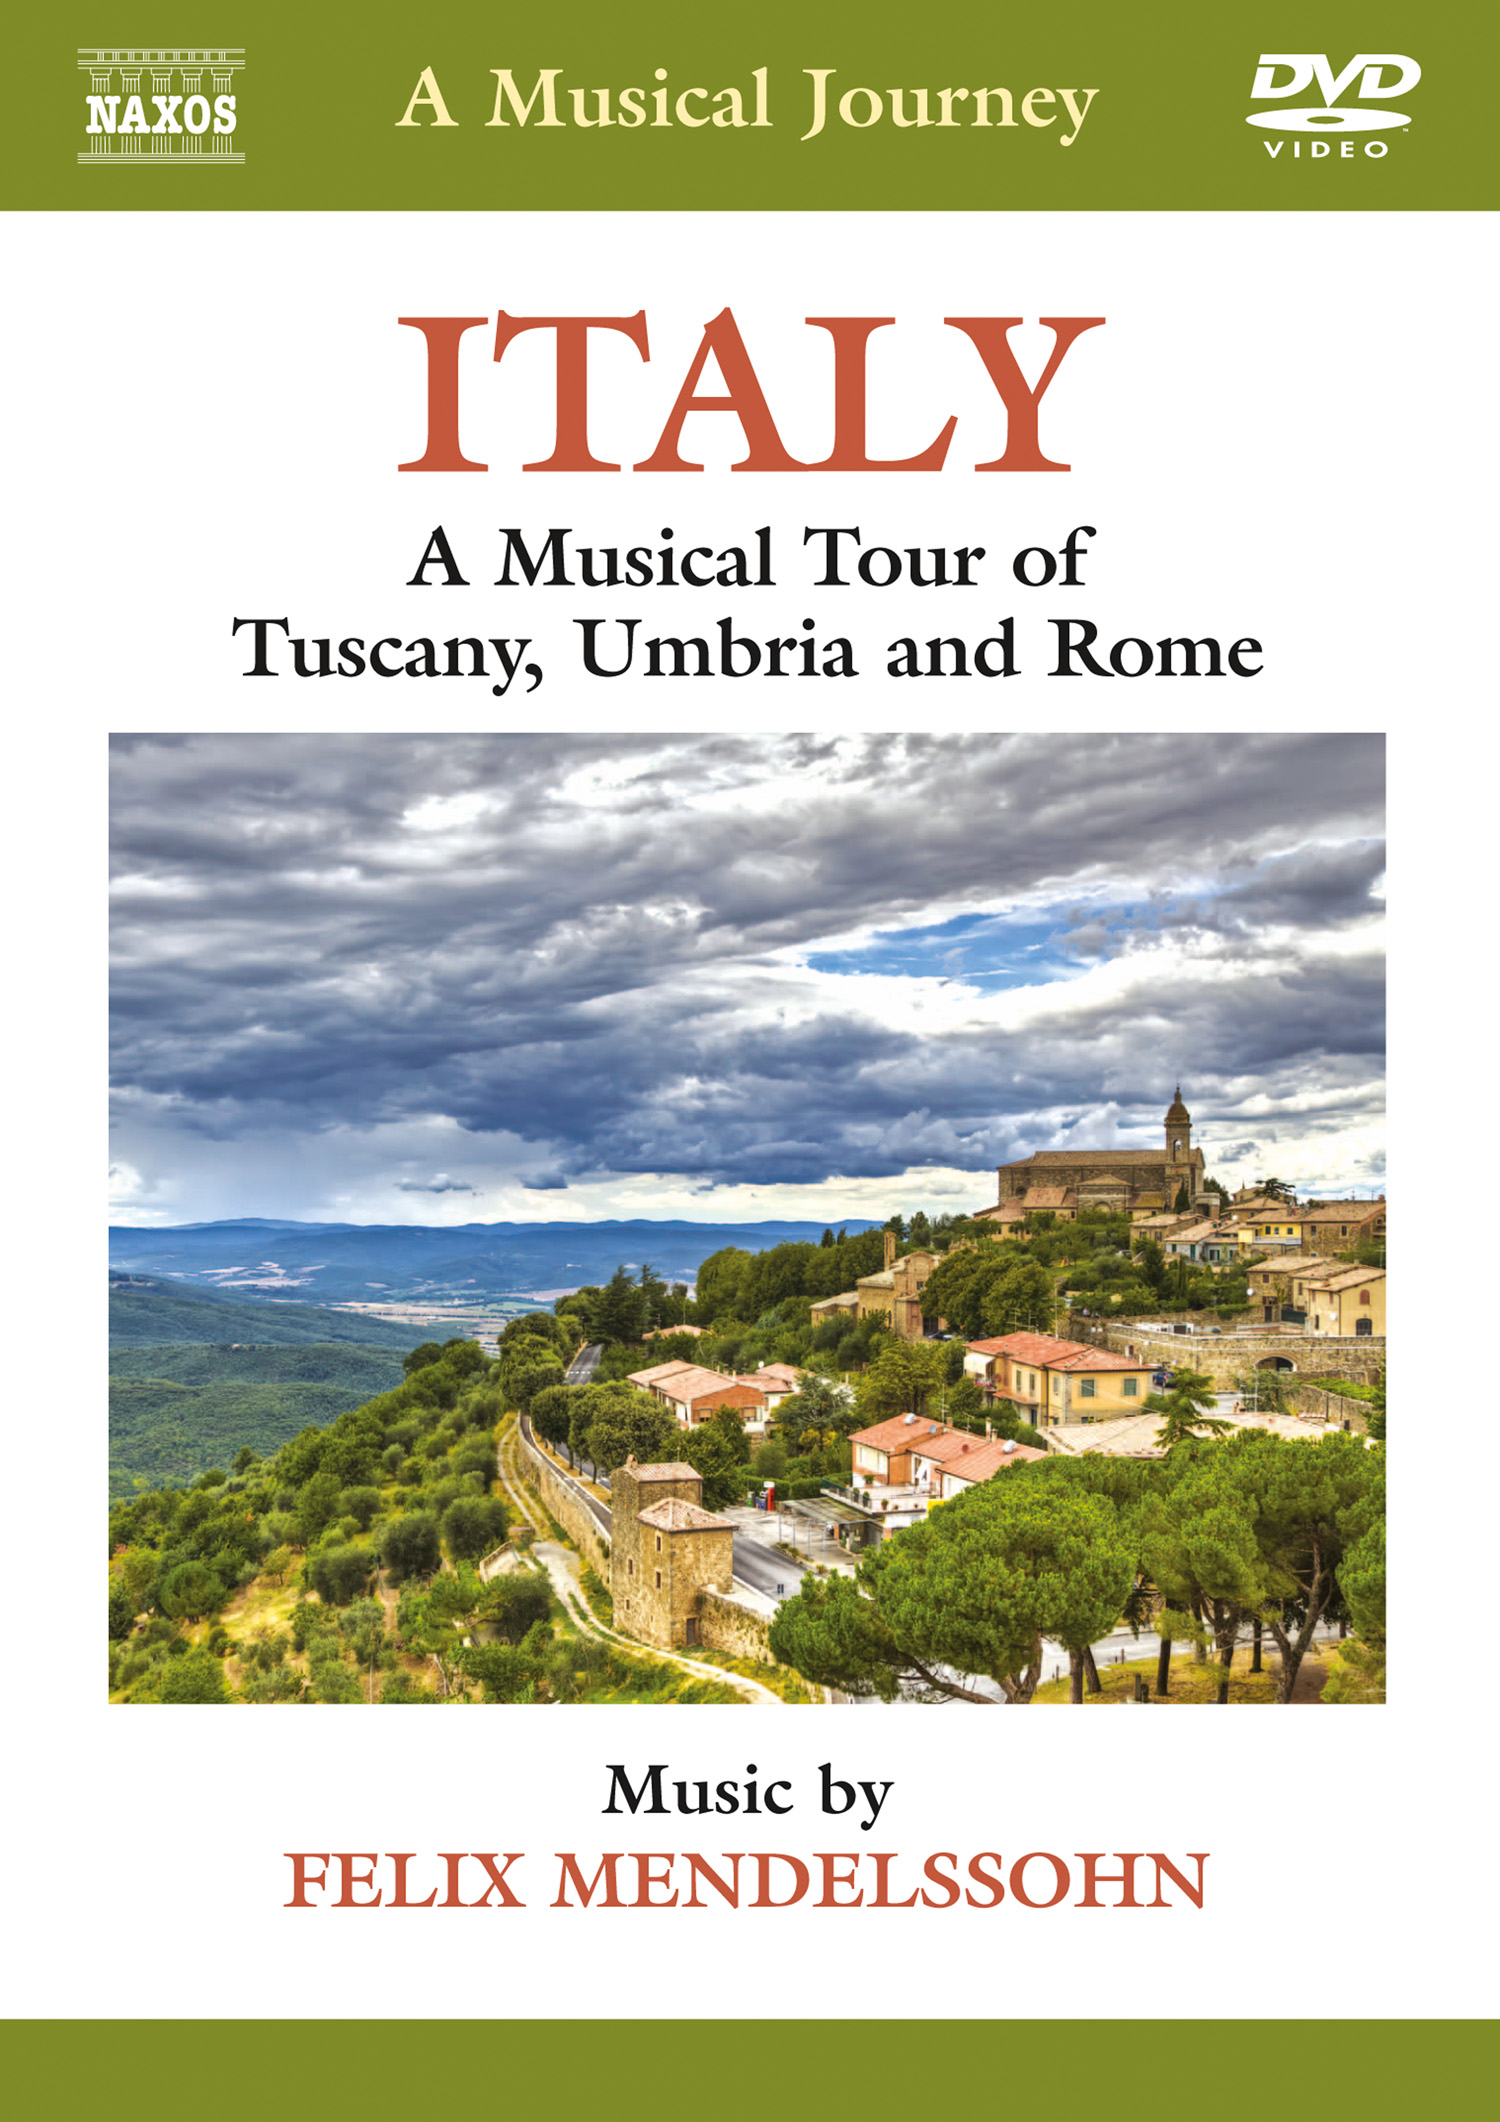 A Musical Journey: Italy - A Musical Tour of Tuscany, Umbria and Rome